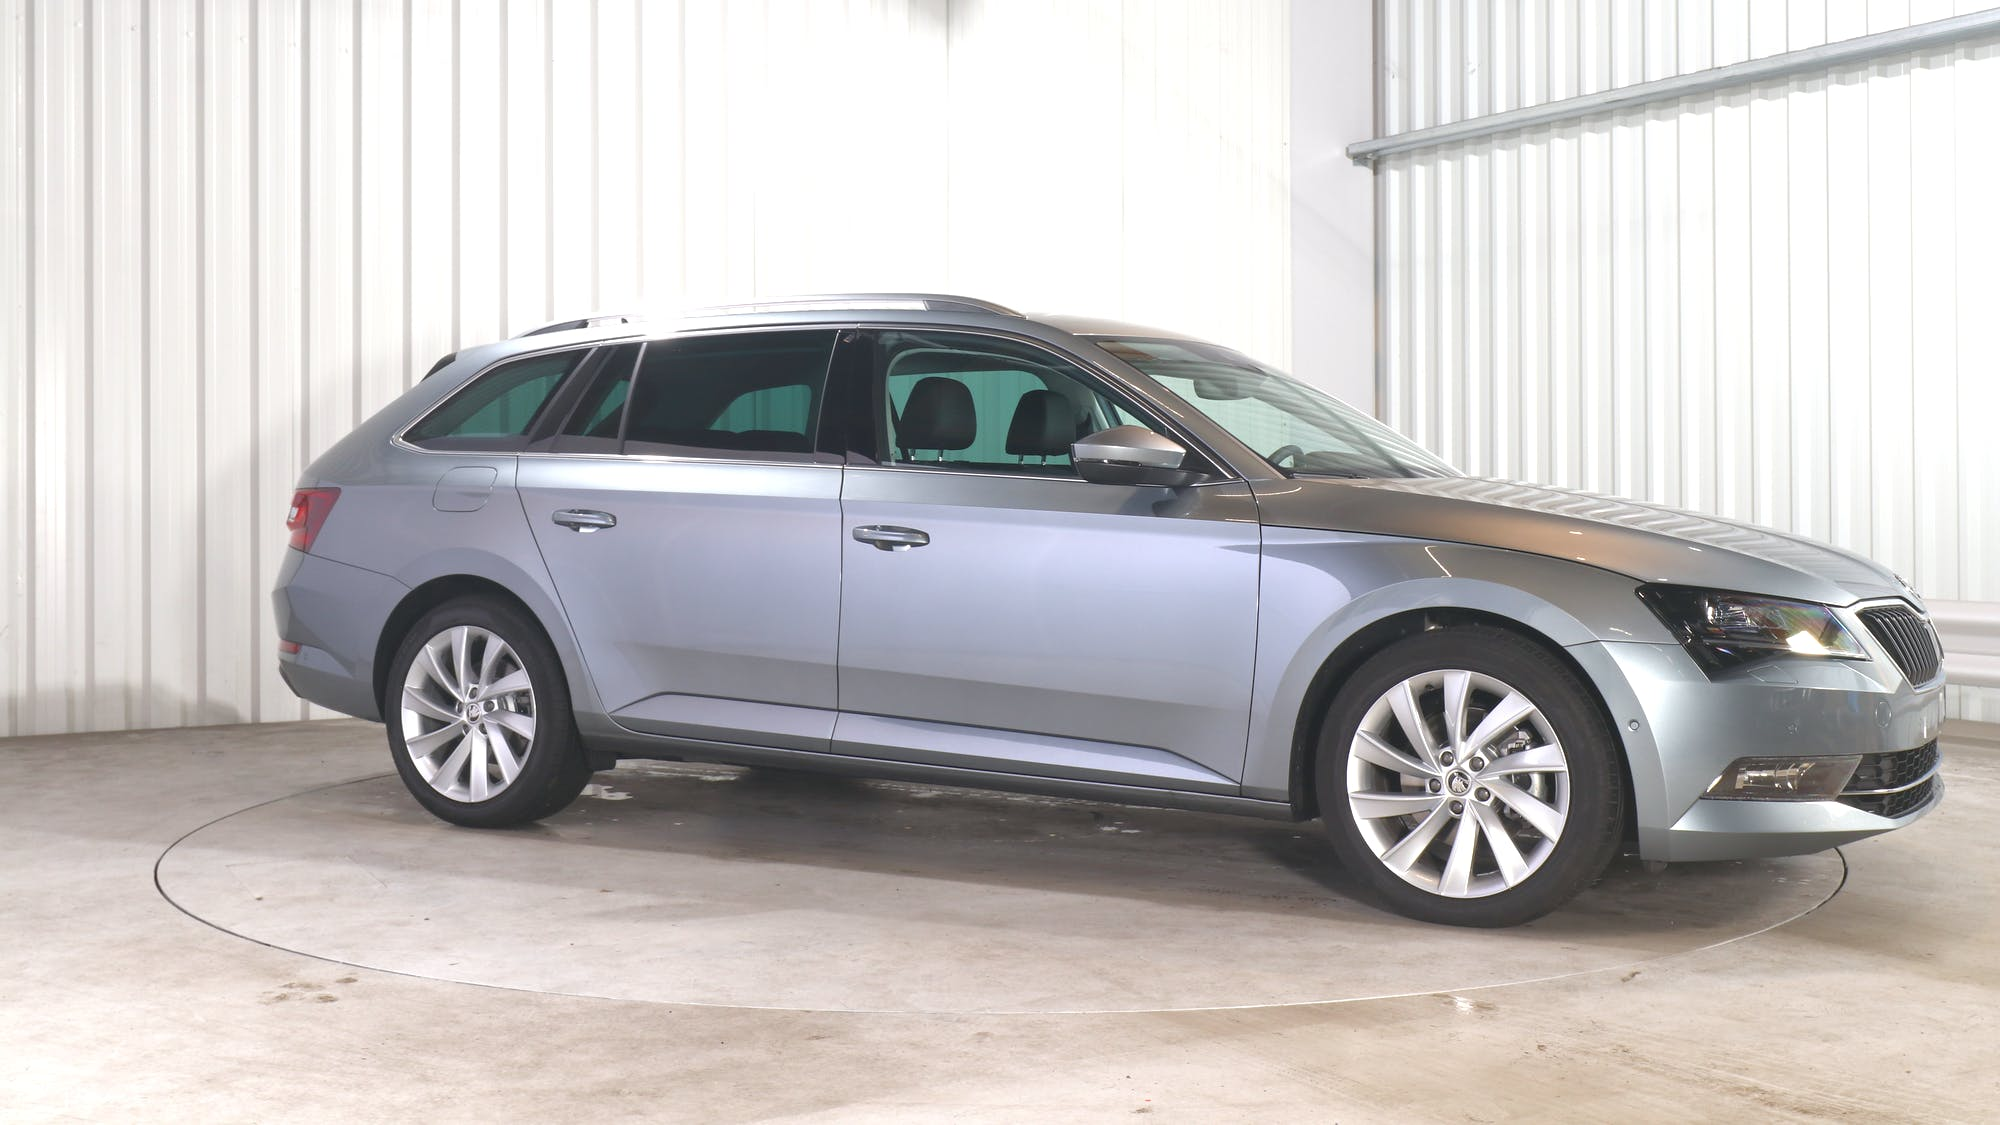 SKODA SUPERB COMBI leasing exterior 9